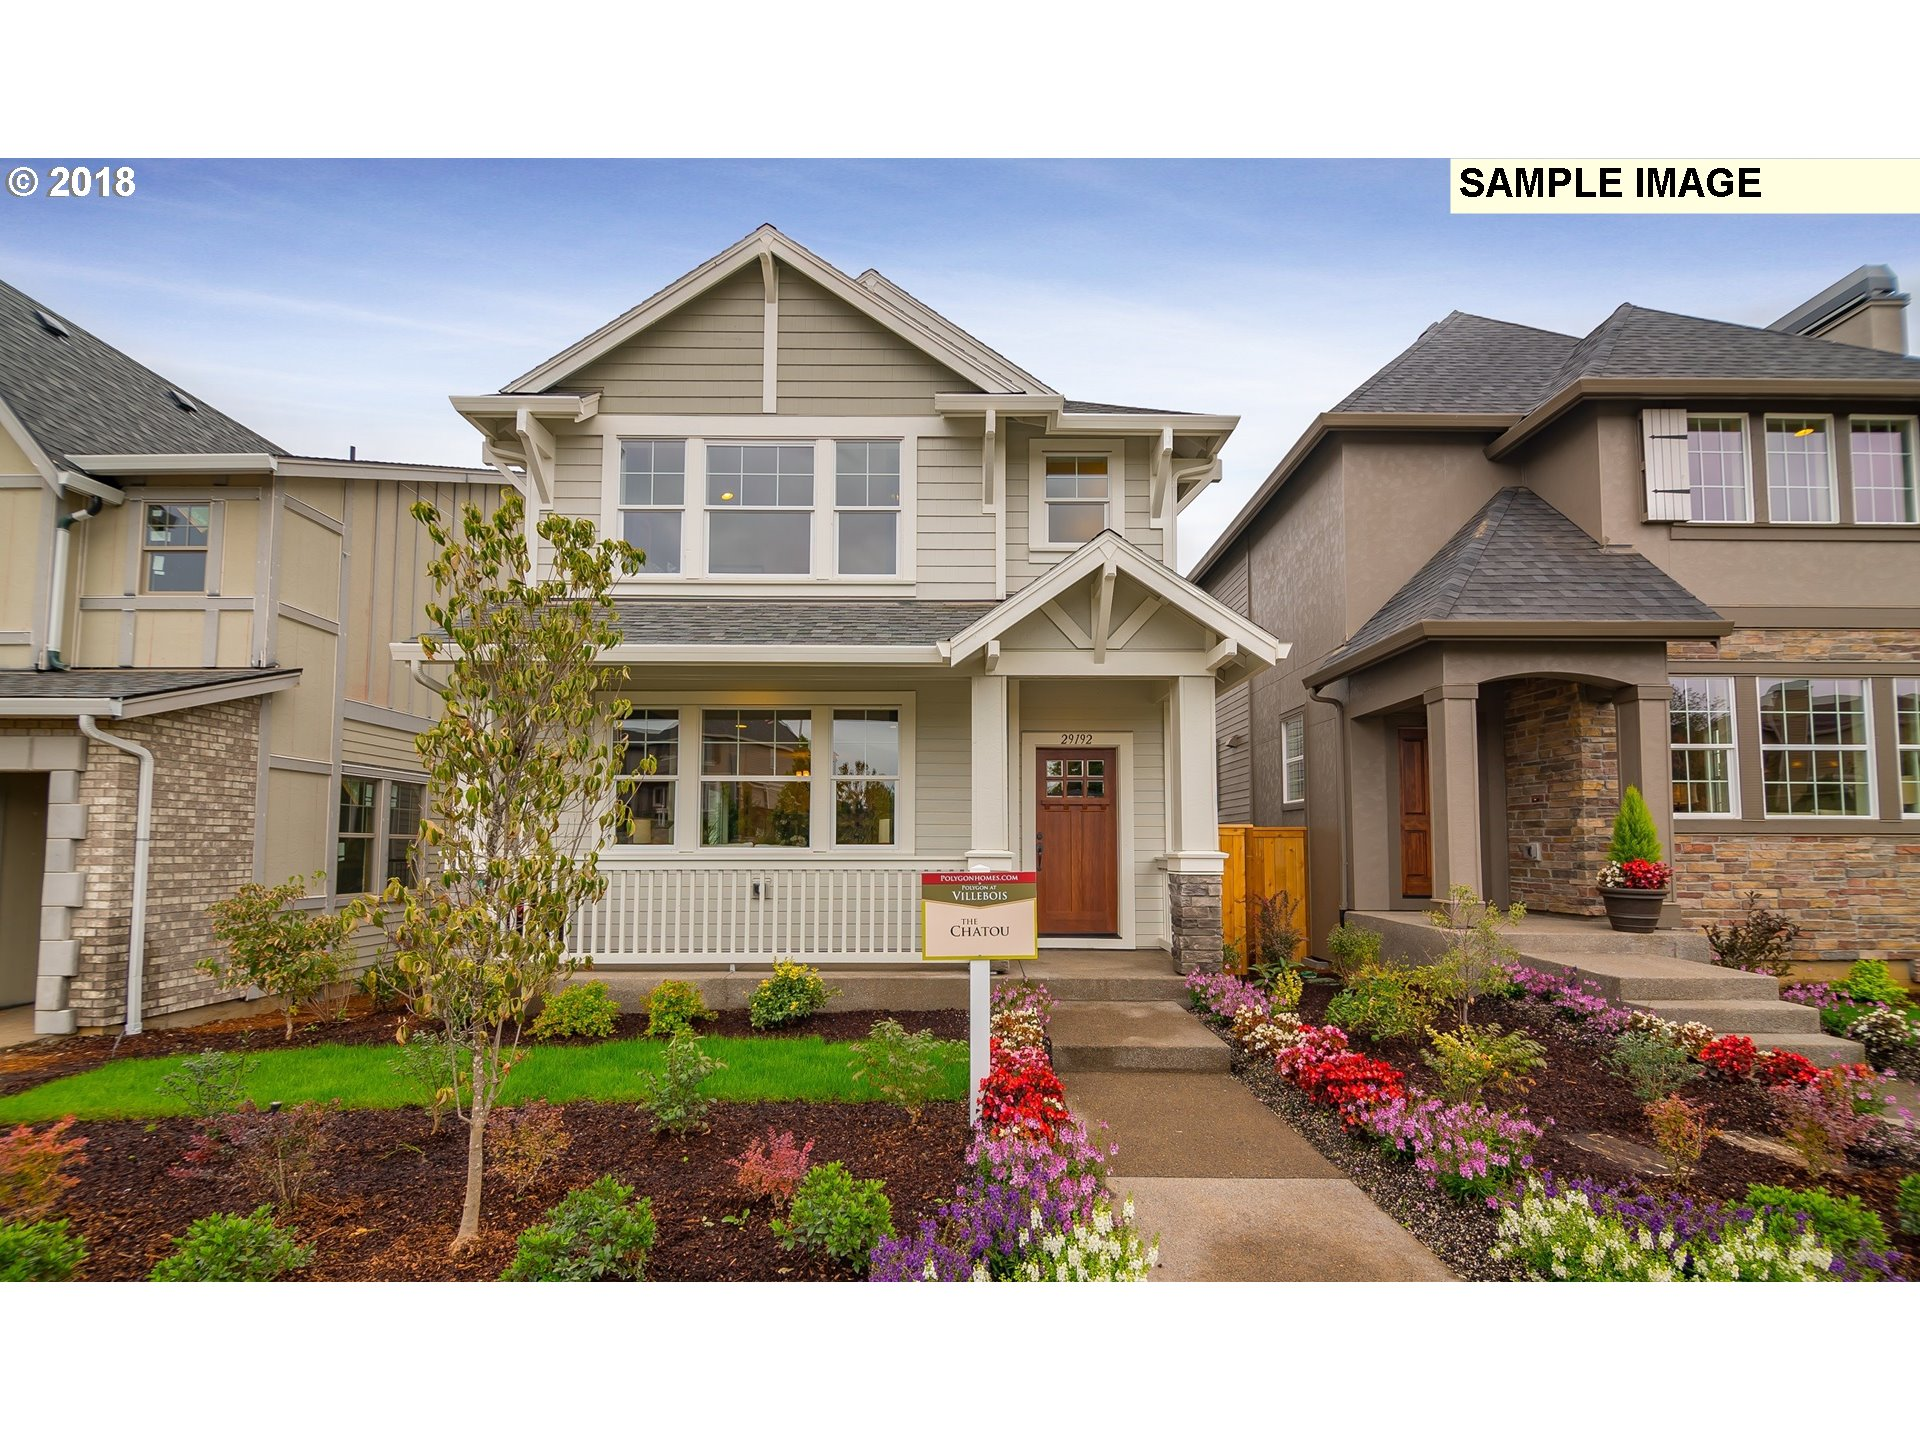 "AMAZING Craftsman-style home at the Eastridge neighborhood in the River Terrace master plan!  Open floor plan with great flow features ""light and bright"" living room w/ cozy fireplace, spacious kitchen w/ quartz island/counters + stainless appliances! Hardwood Floors on Main! HUGE Bonus Rm on Main perfect for home theater! Luxurious Master Suite boasts walk-in closet, soaker tub, walk-in shower and dual vanity! 3 Yr. Warranty. Taxes:TBD"